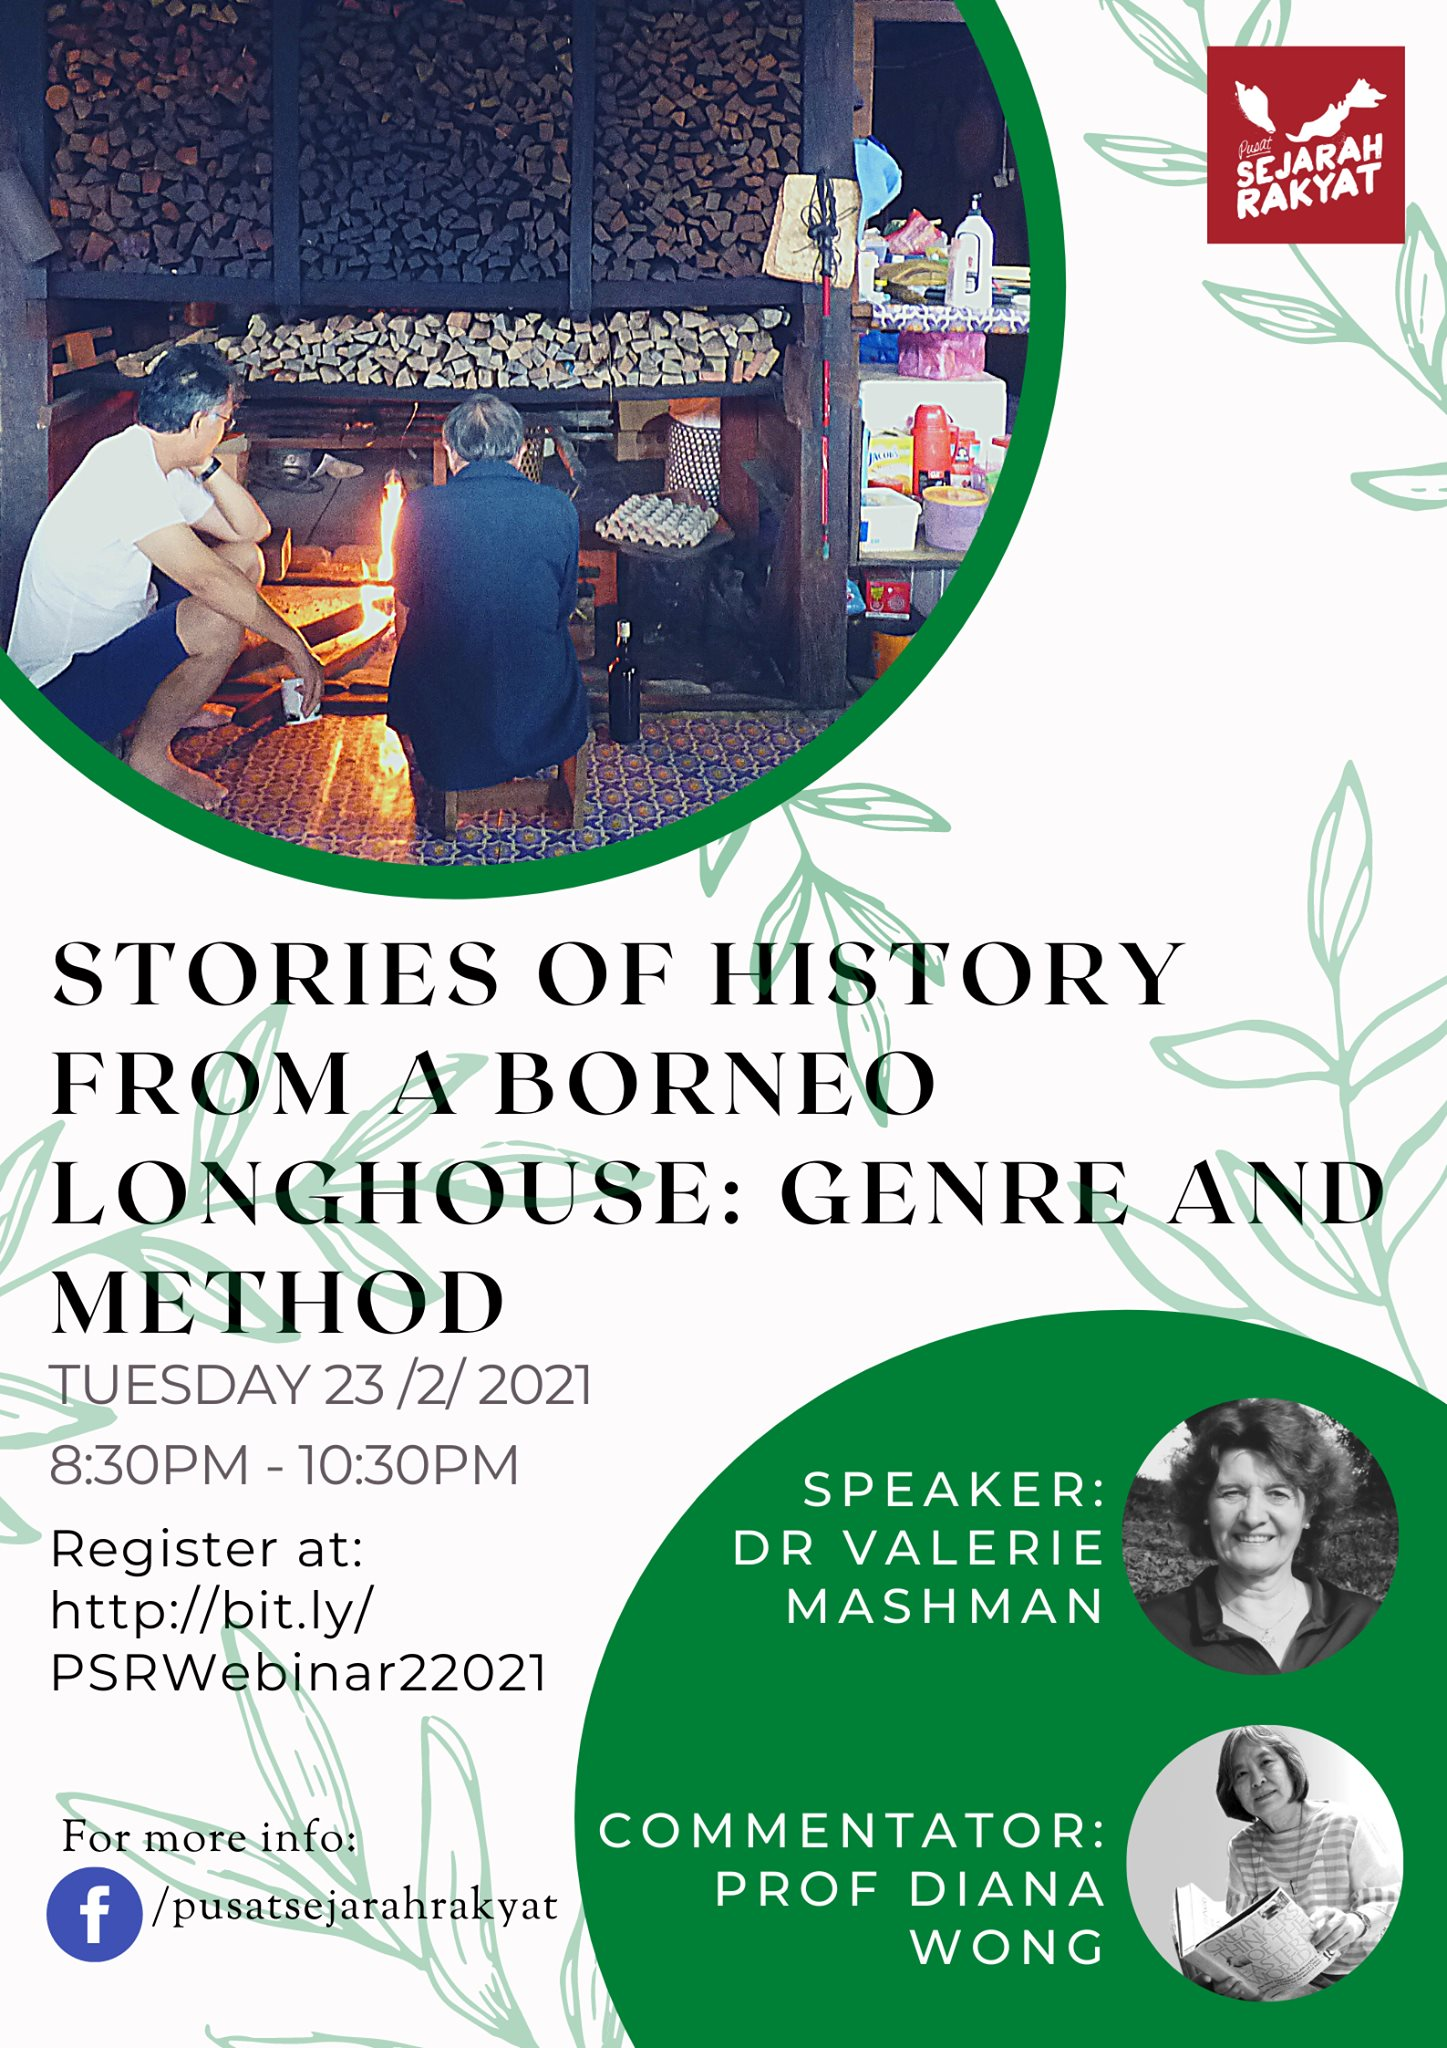 Photo of [Webinar] Stories of History from a Borneo Longhouse: Genre and Method (video)